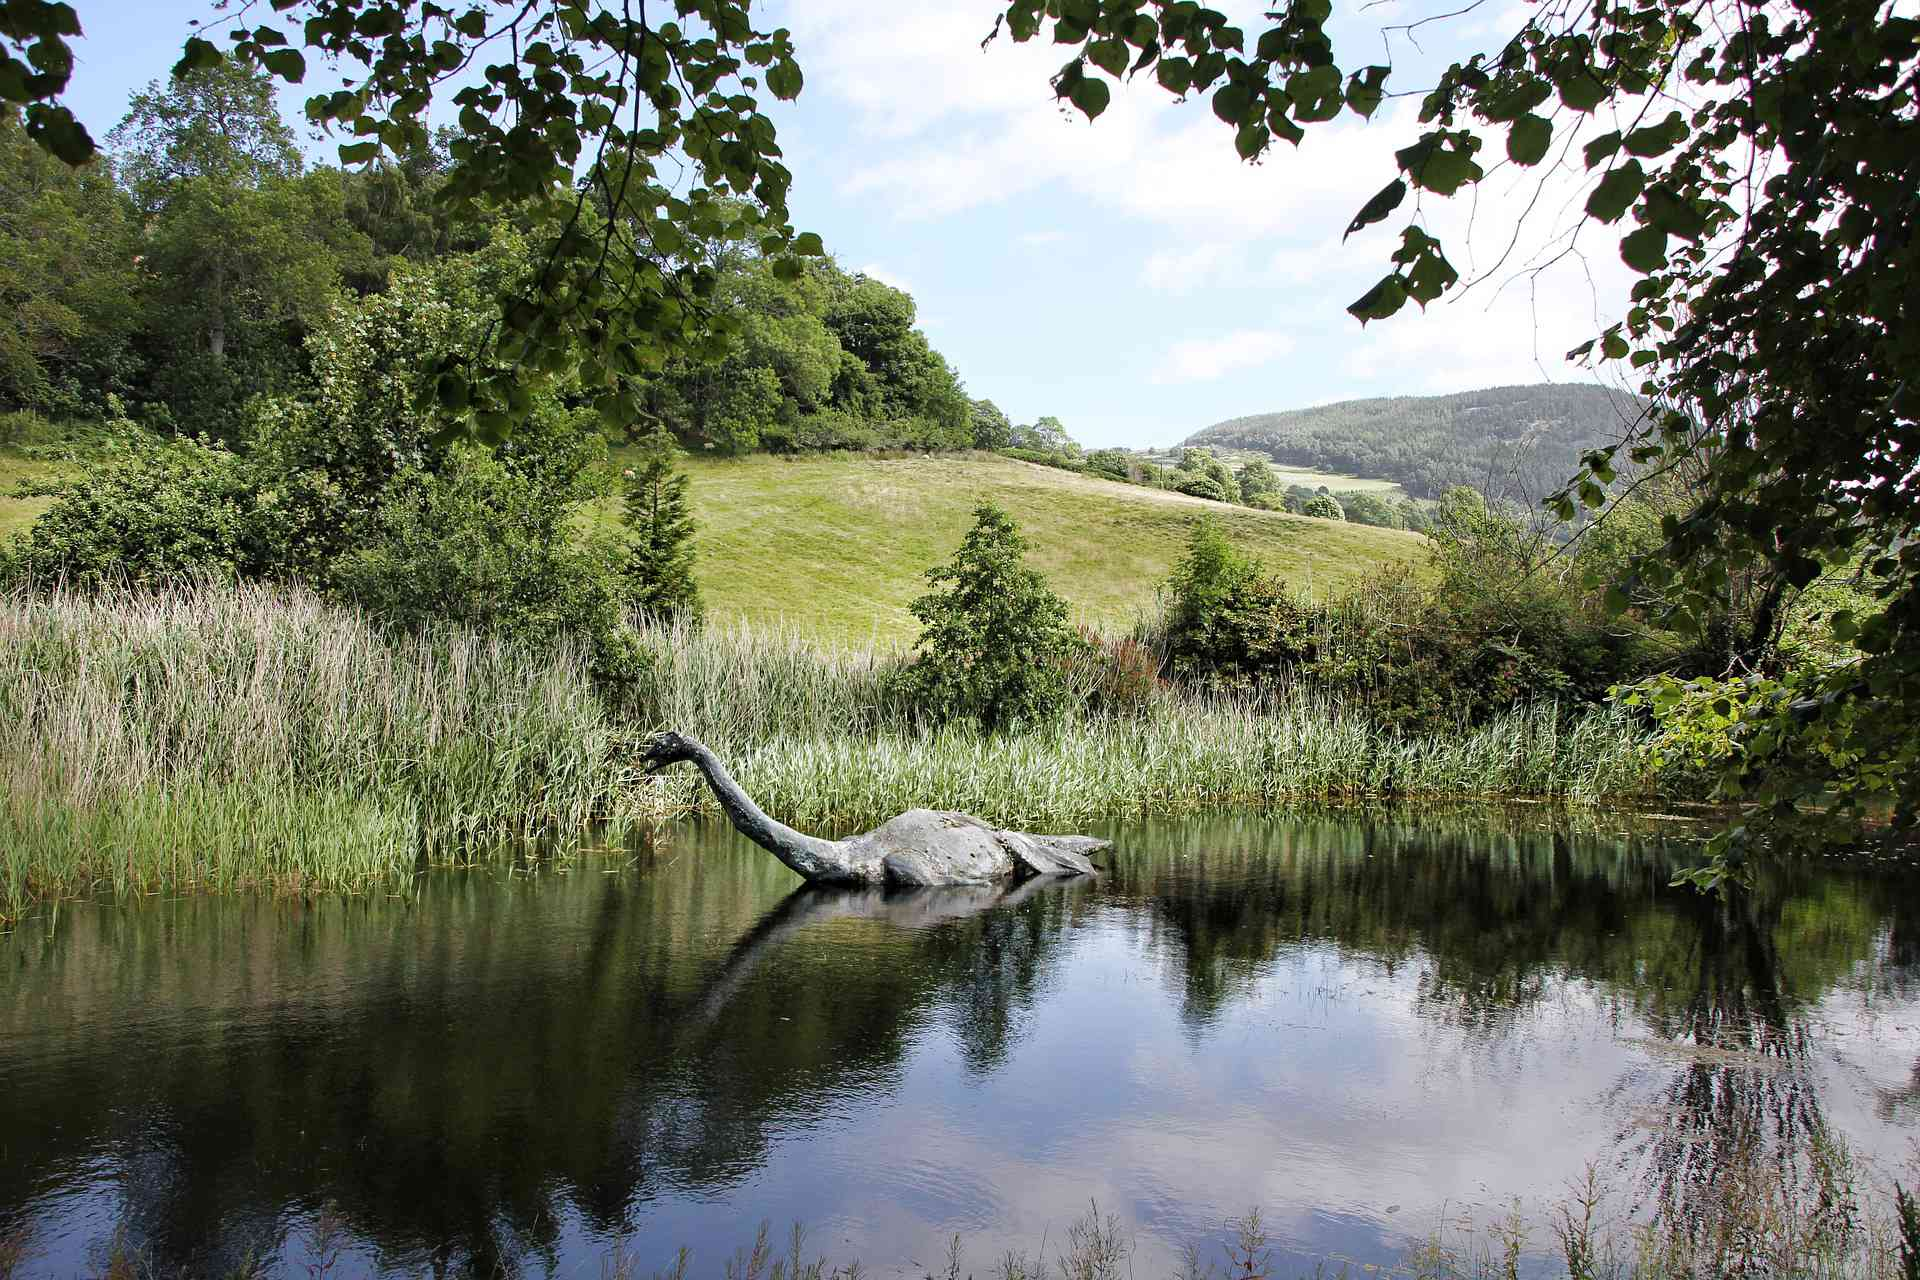 Statue of the Loch Ness Monster floating in a lake.